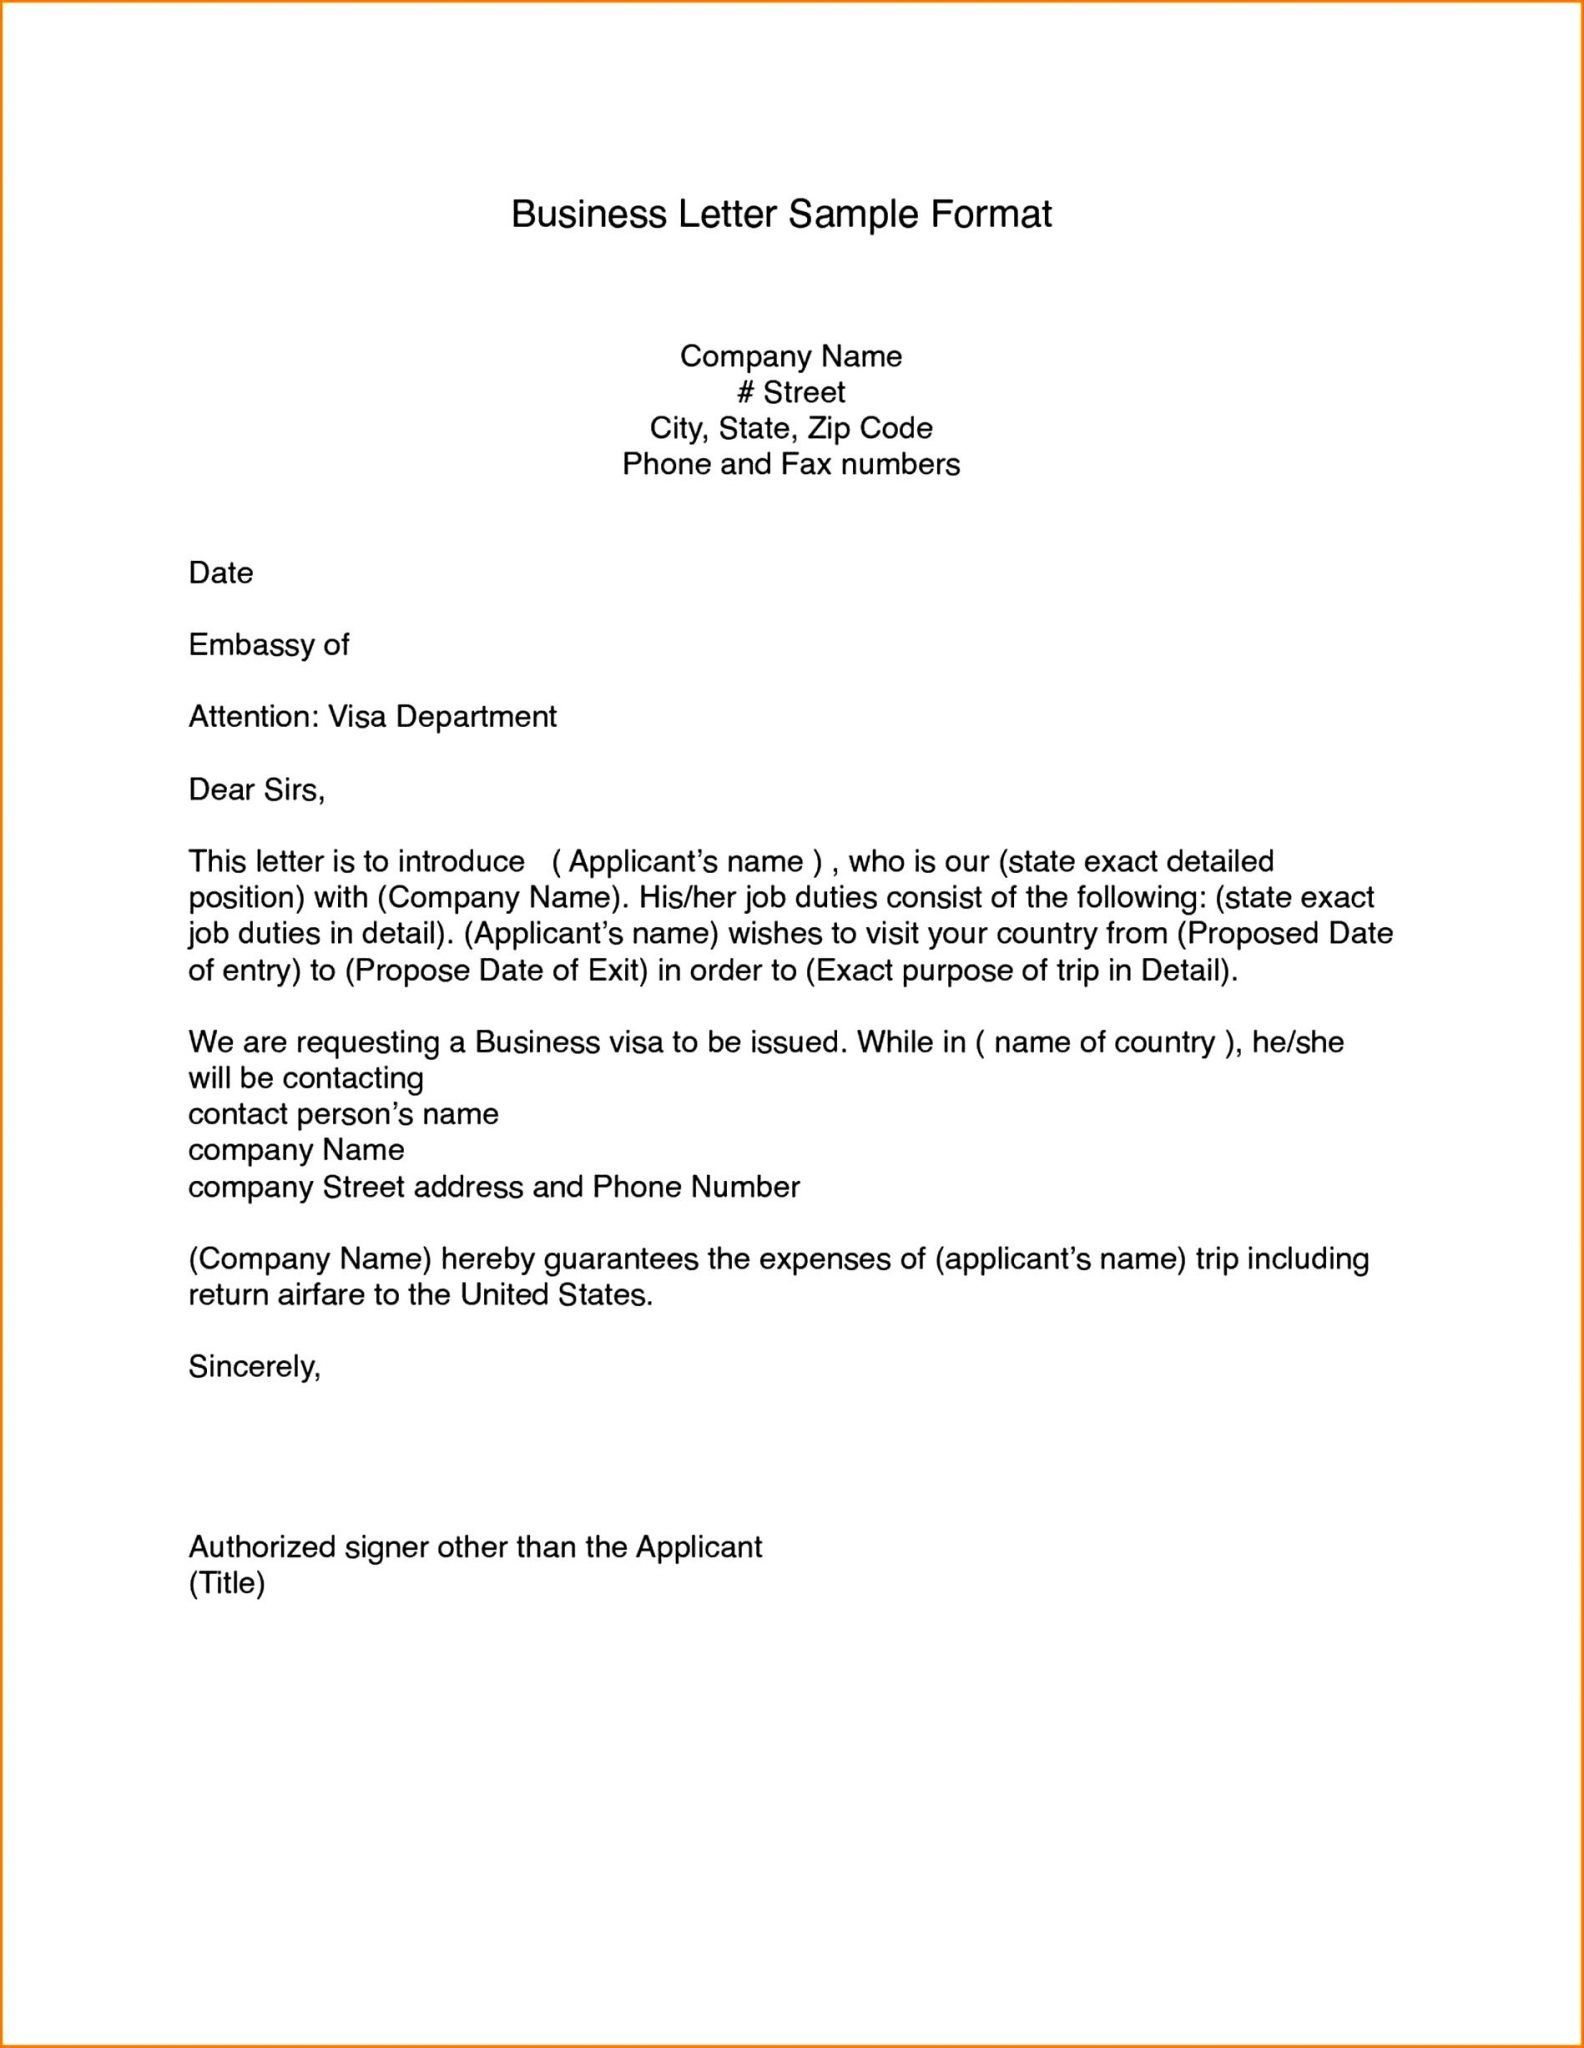 Business Letter Format Template In 2021 Business Letter Template Business Letter Format Business Letter Sample Template of a business letter